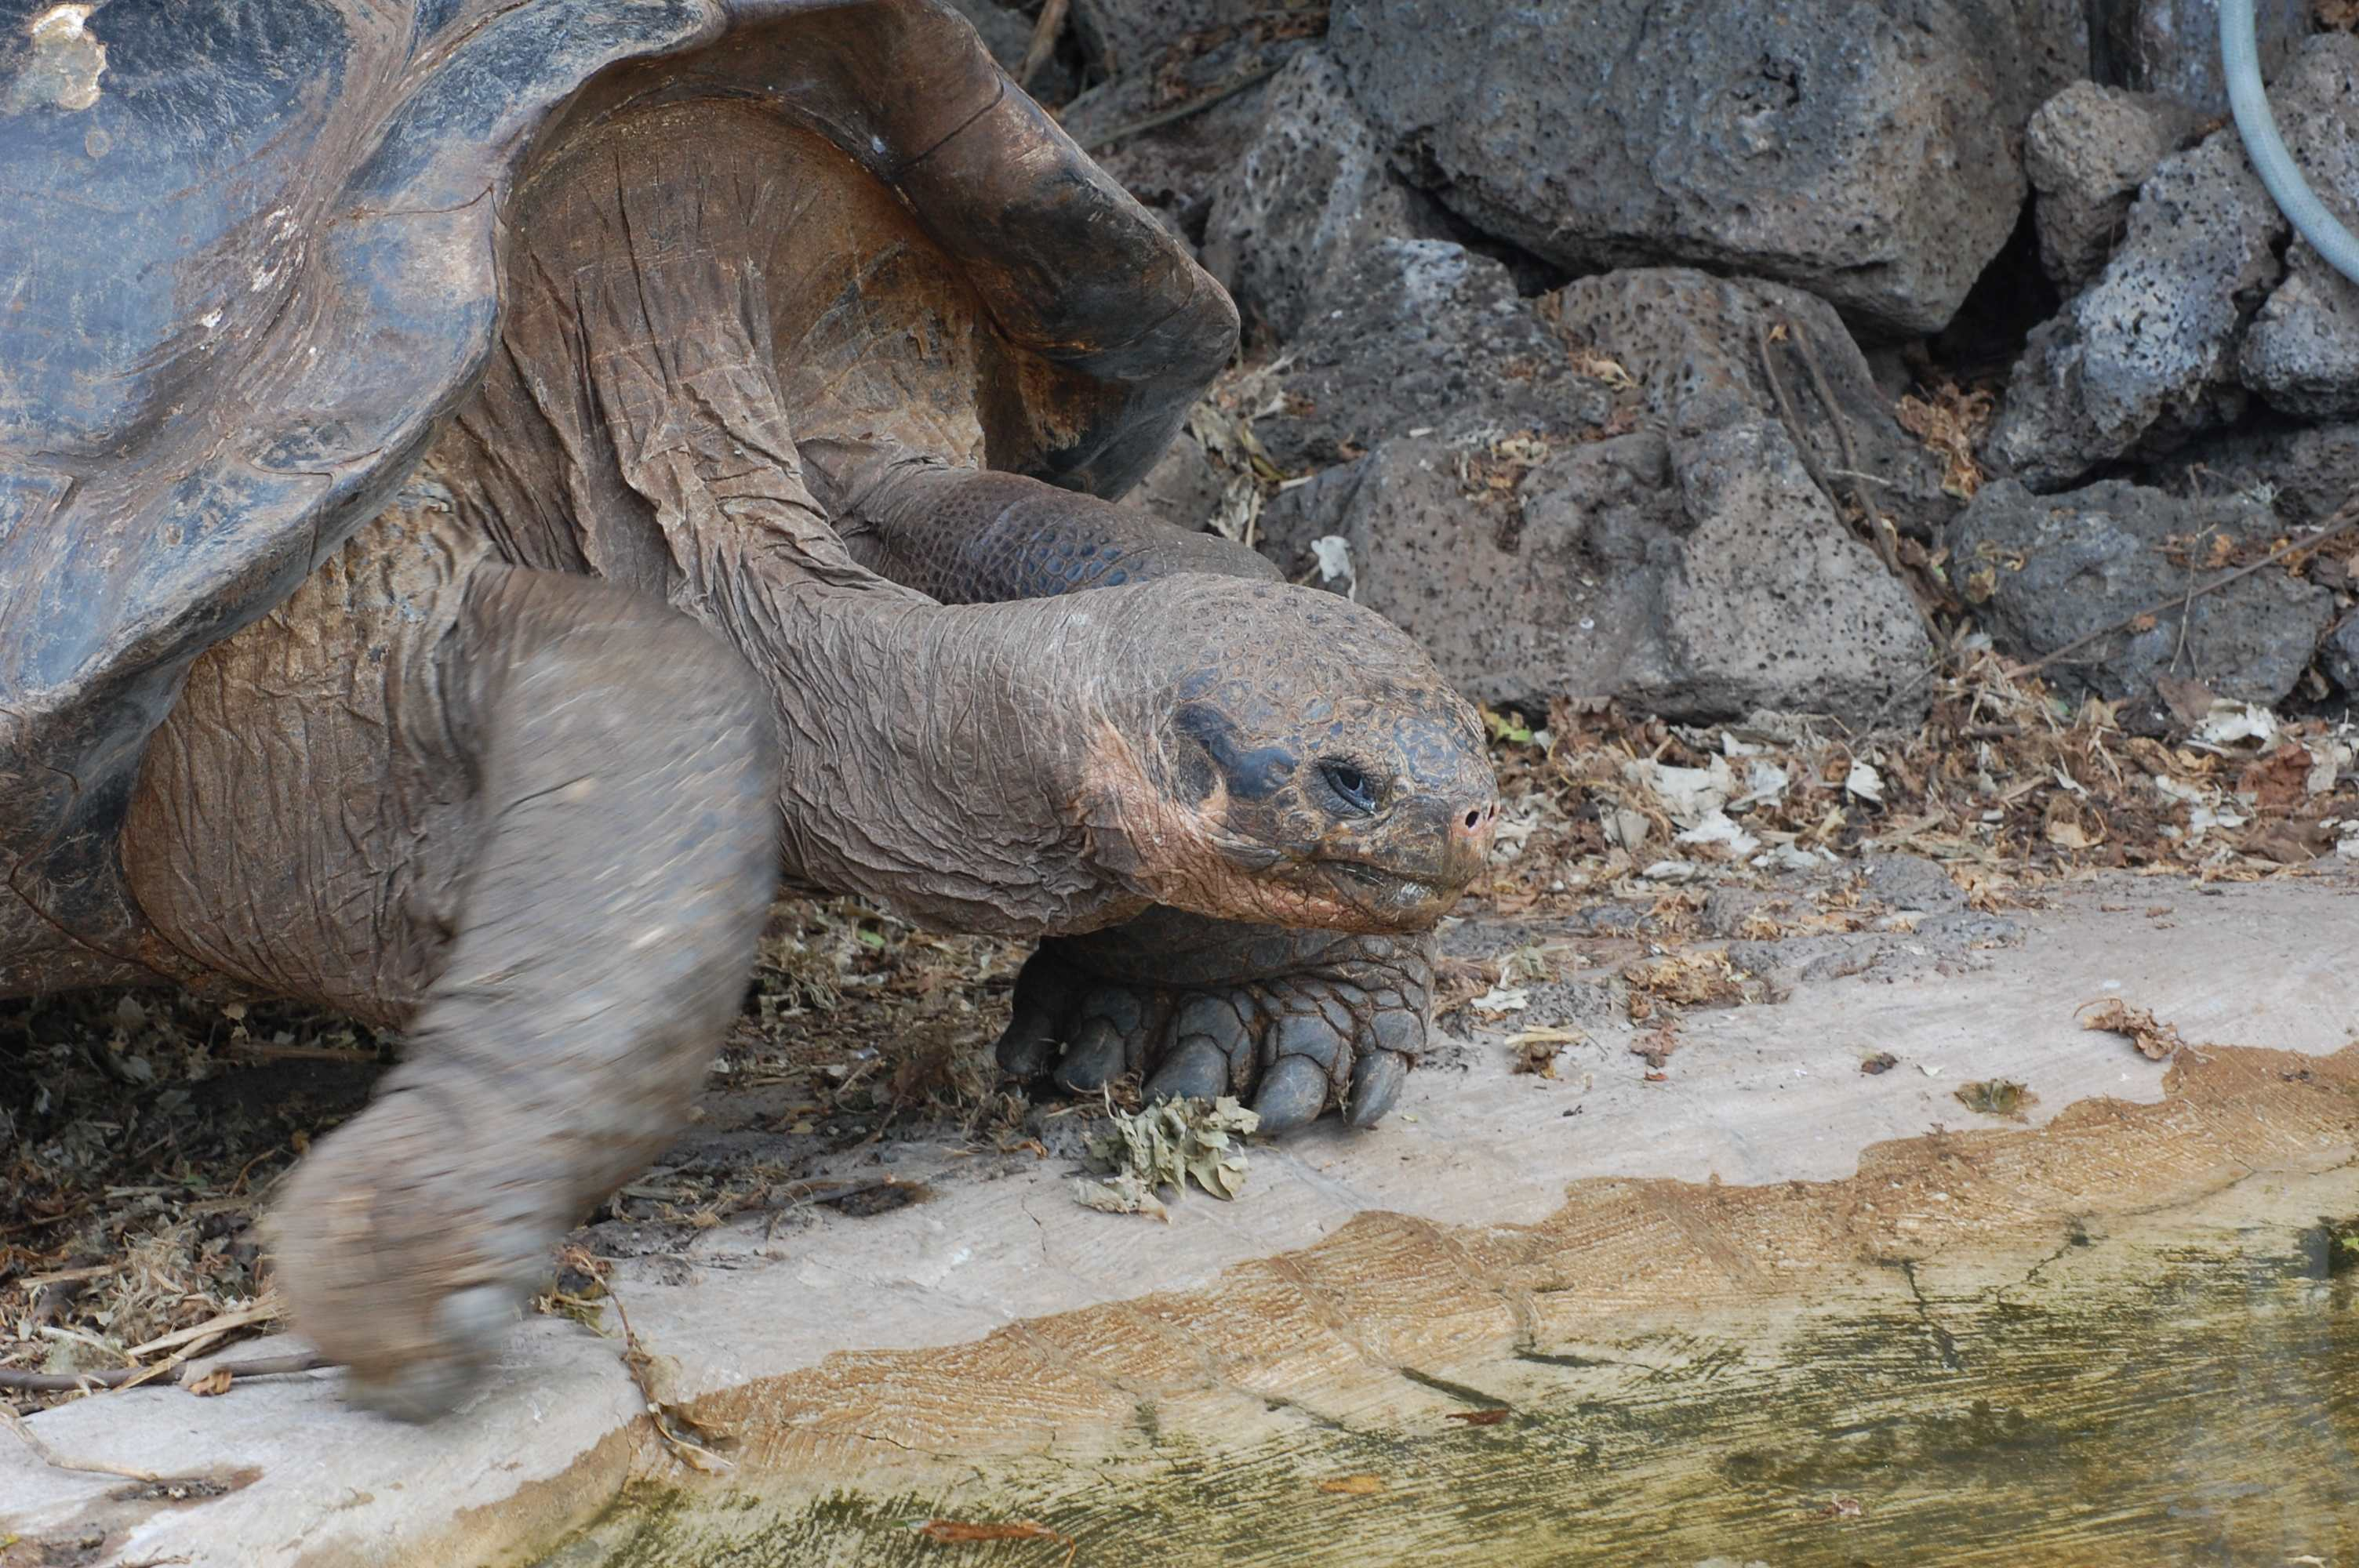 Notice the claw-like toes on this tortoise.